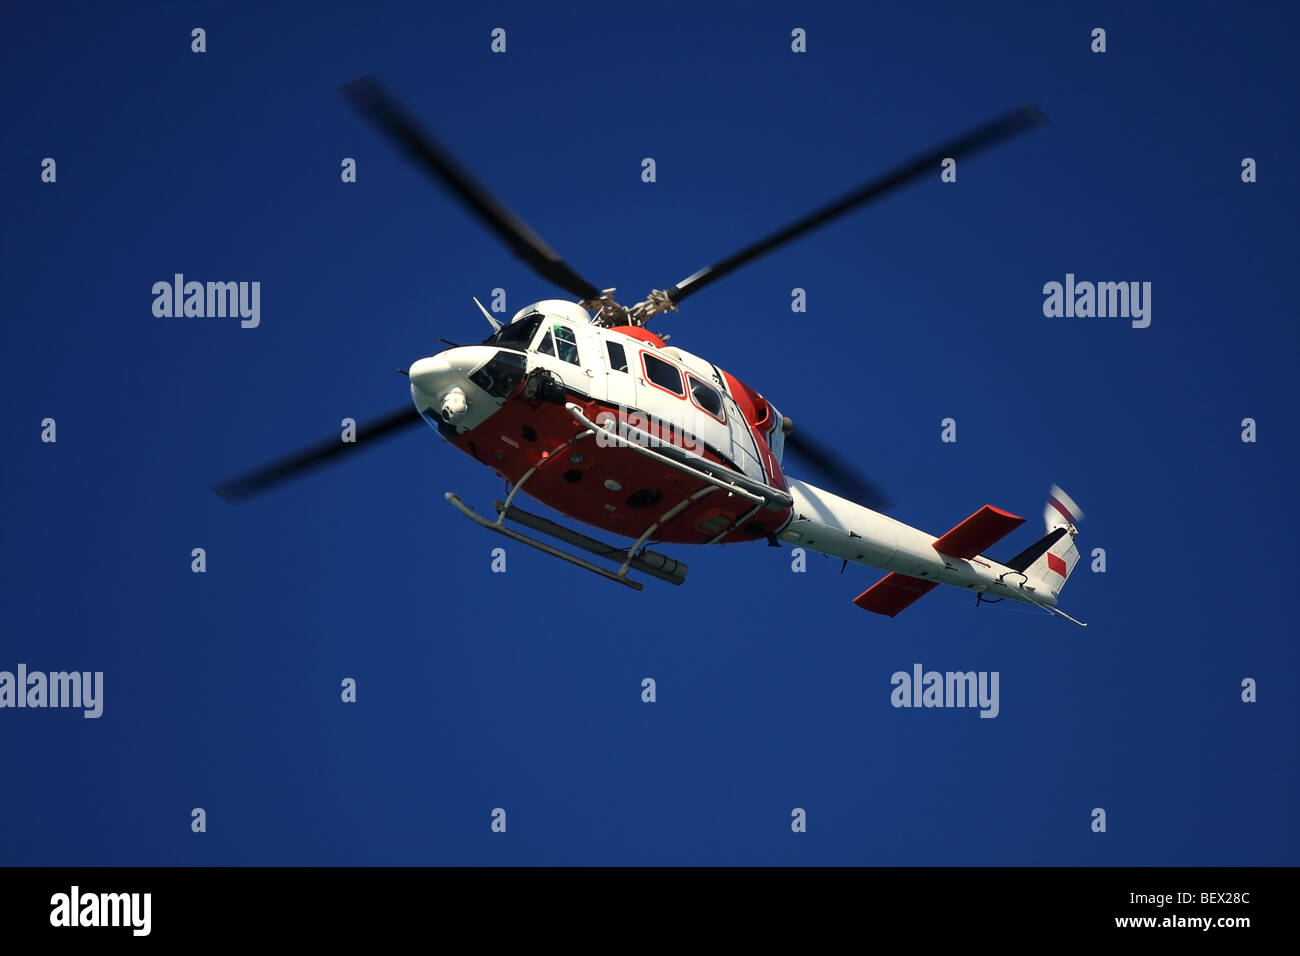 Flying helicopter in deep blue sky. Coast Guard colours. Stock Photo